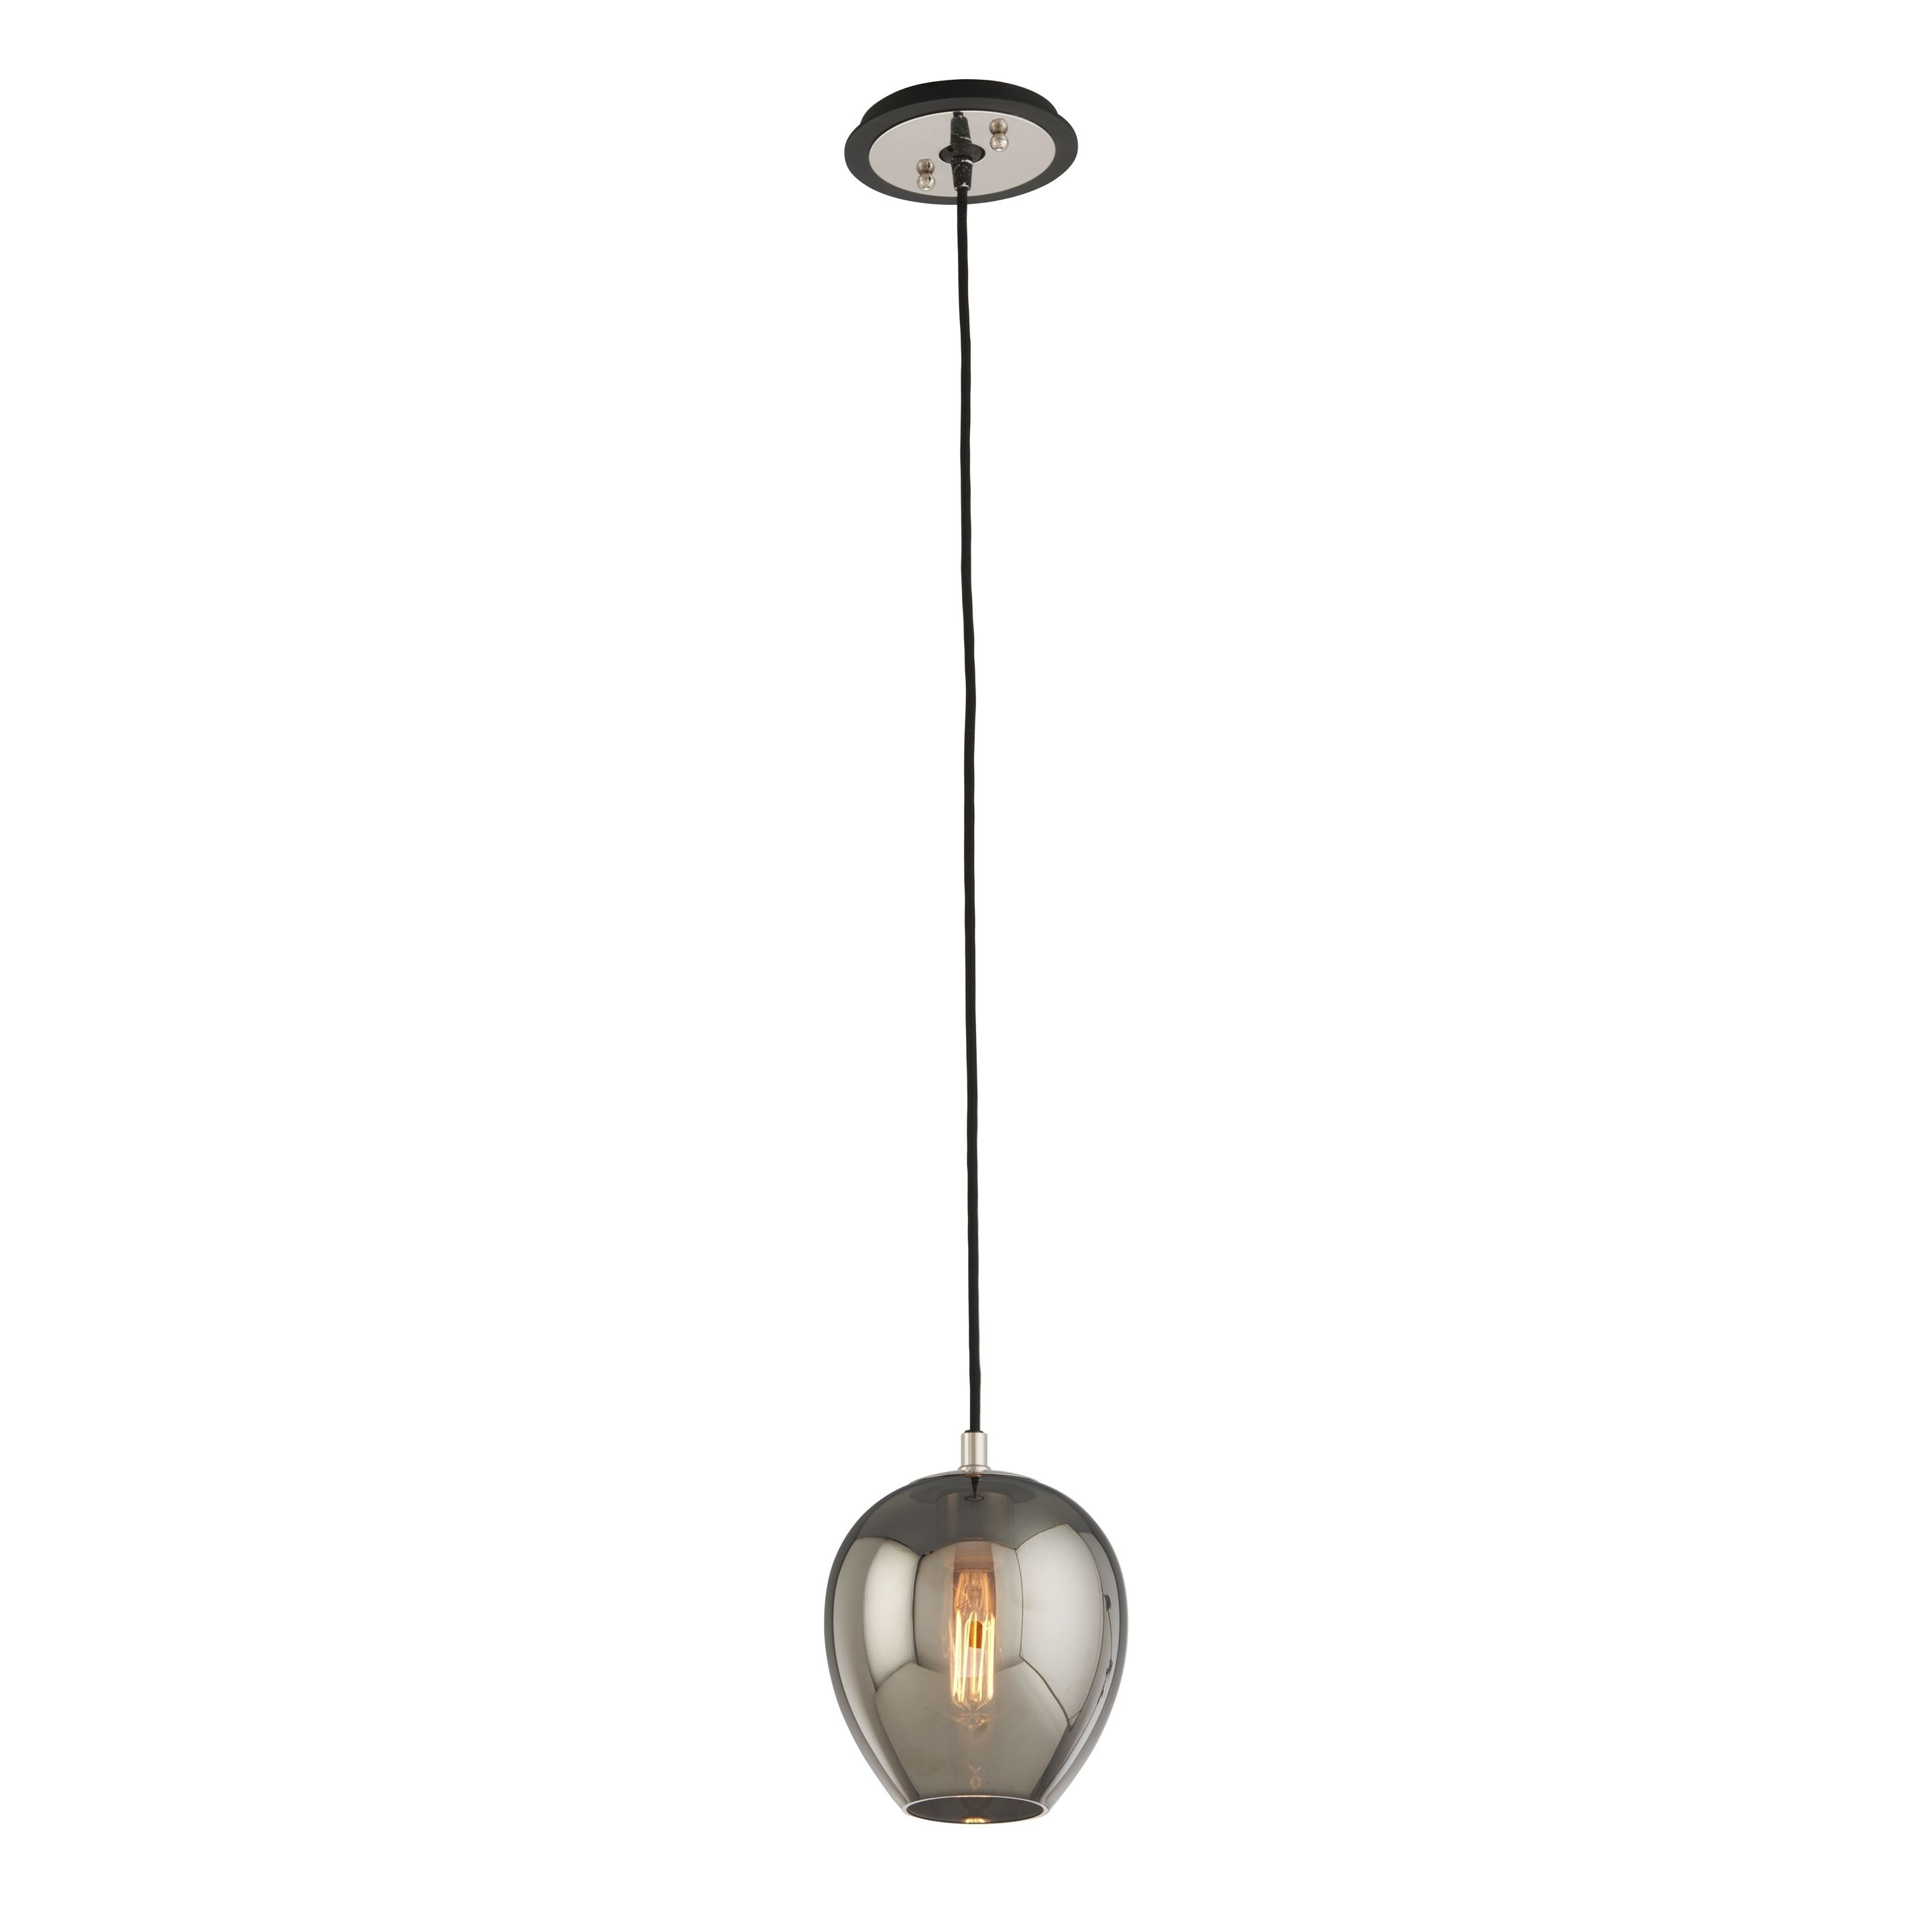 $178 The Odyssey 1-light Mini Pendant comes in a carbide black and polished nickel finish and a plated smoked shade. This fixture is made of hand worked wrought iron and glass material.